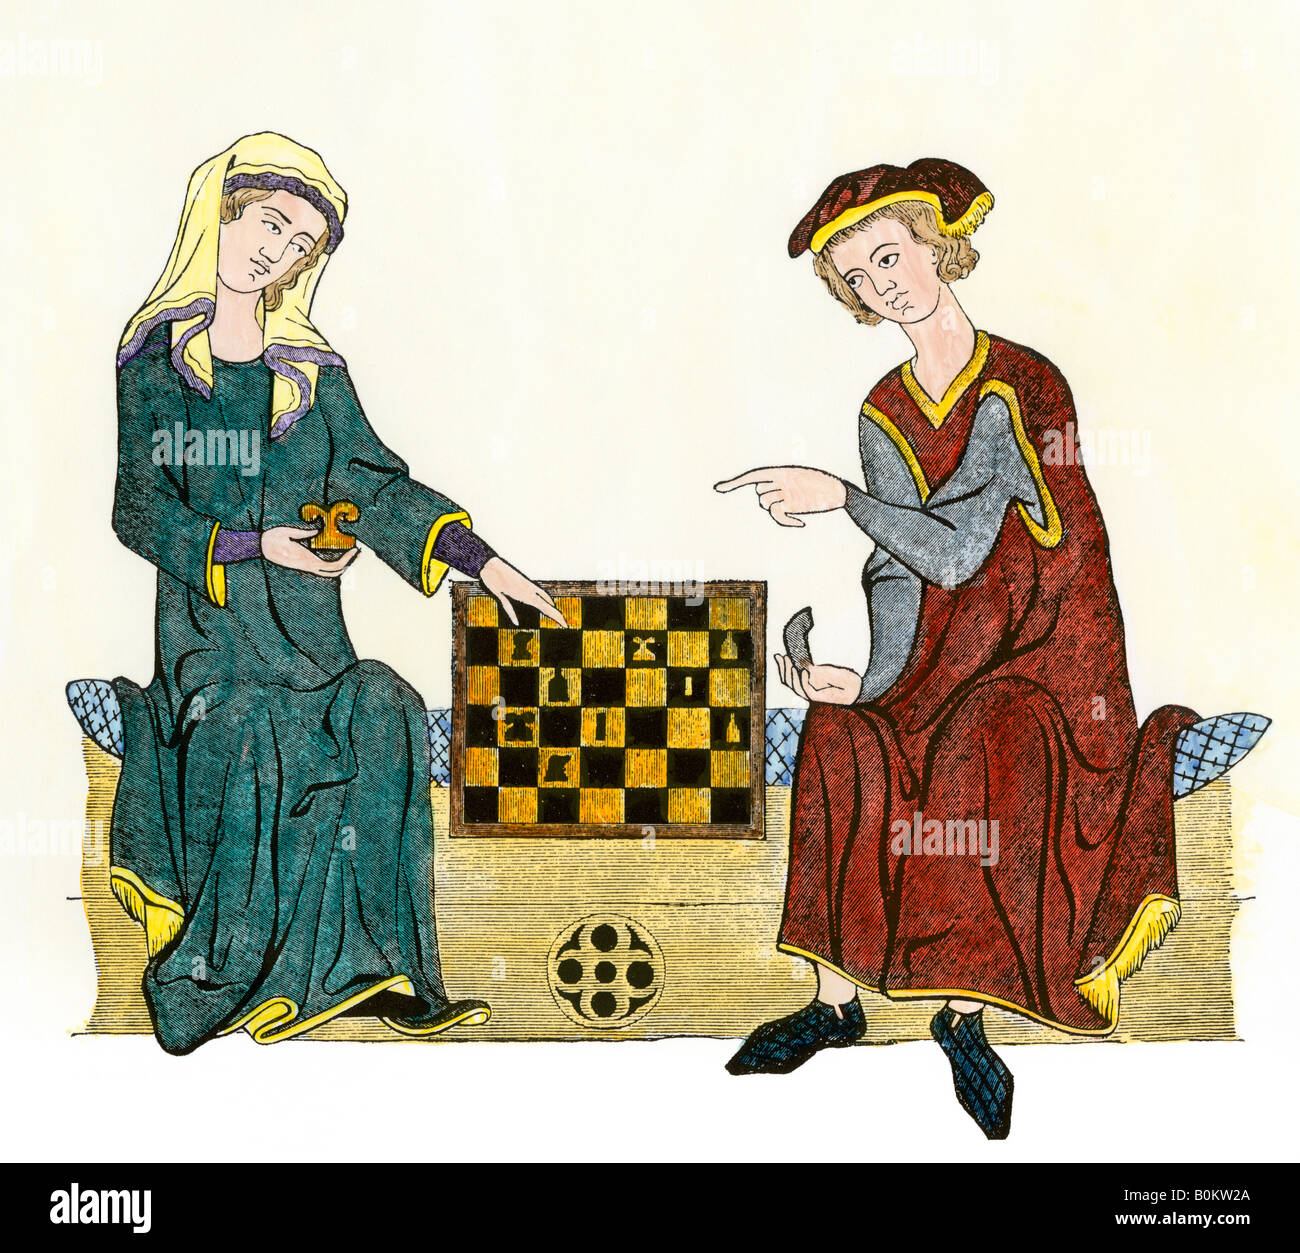 Chess players in the Middle Ages. Hand-colored woodcut - Stock Image